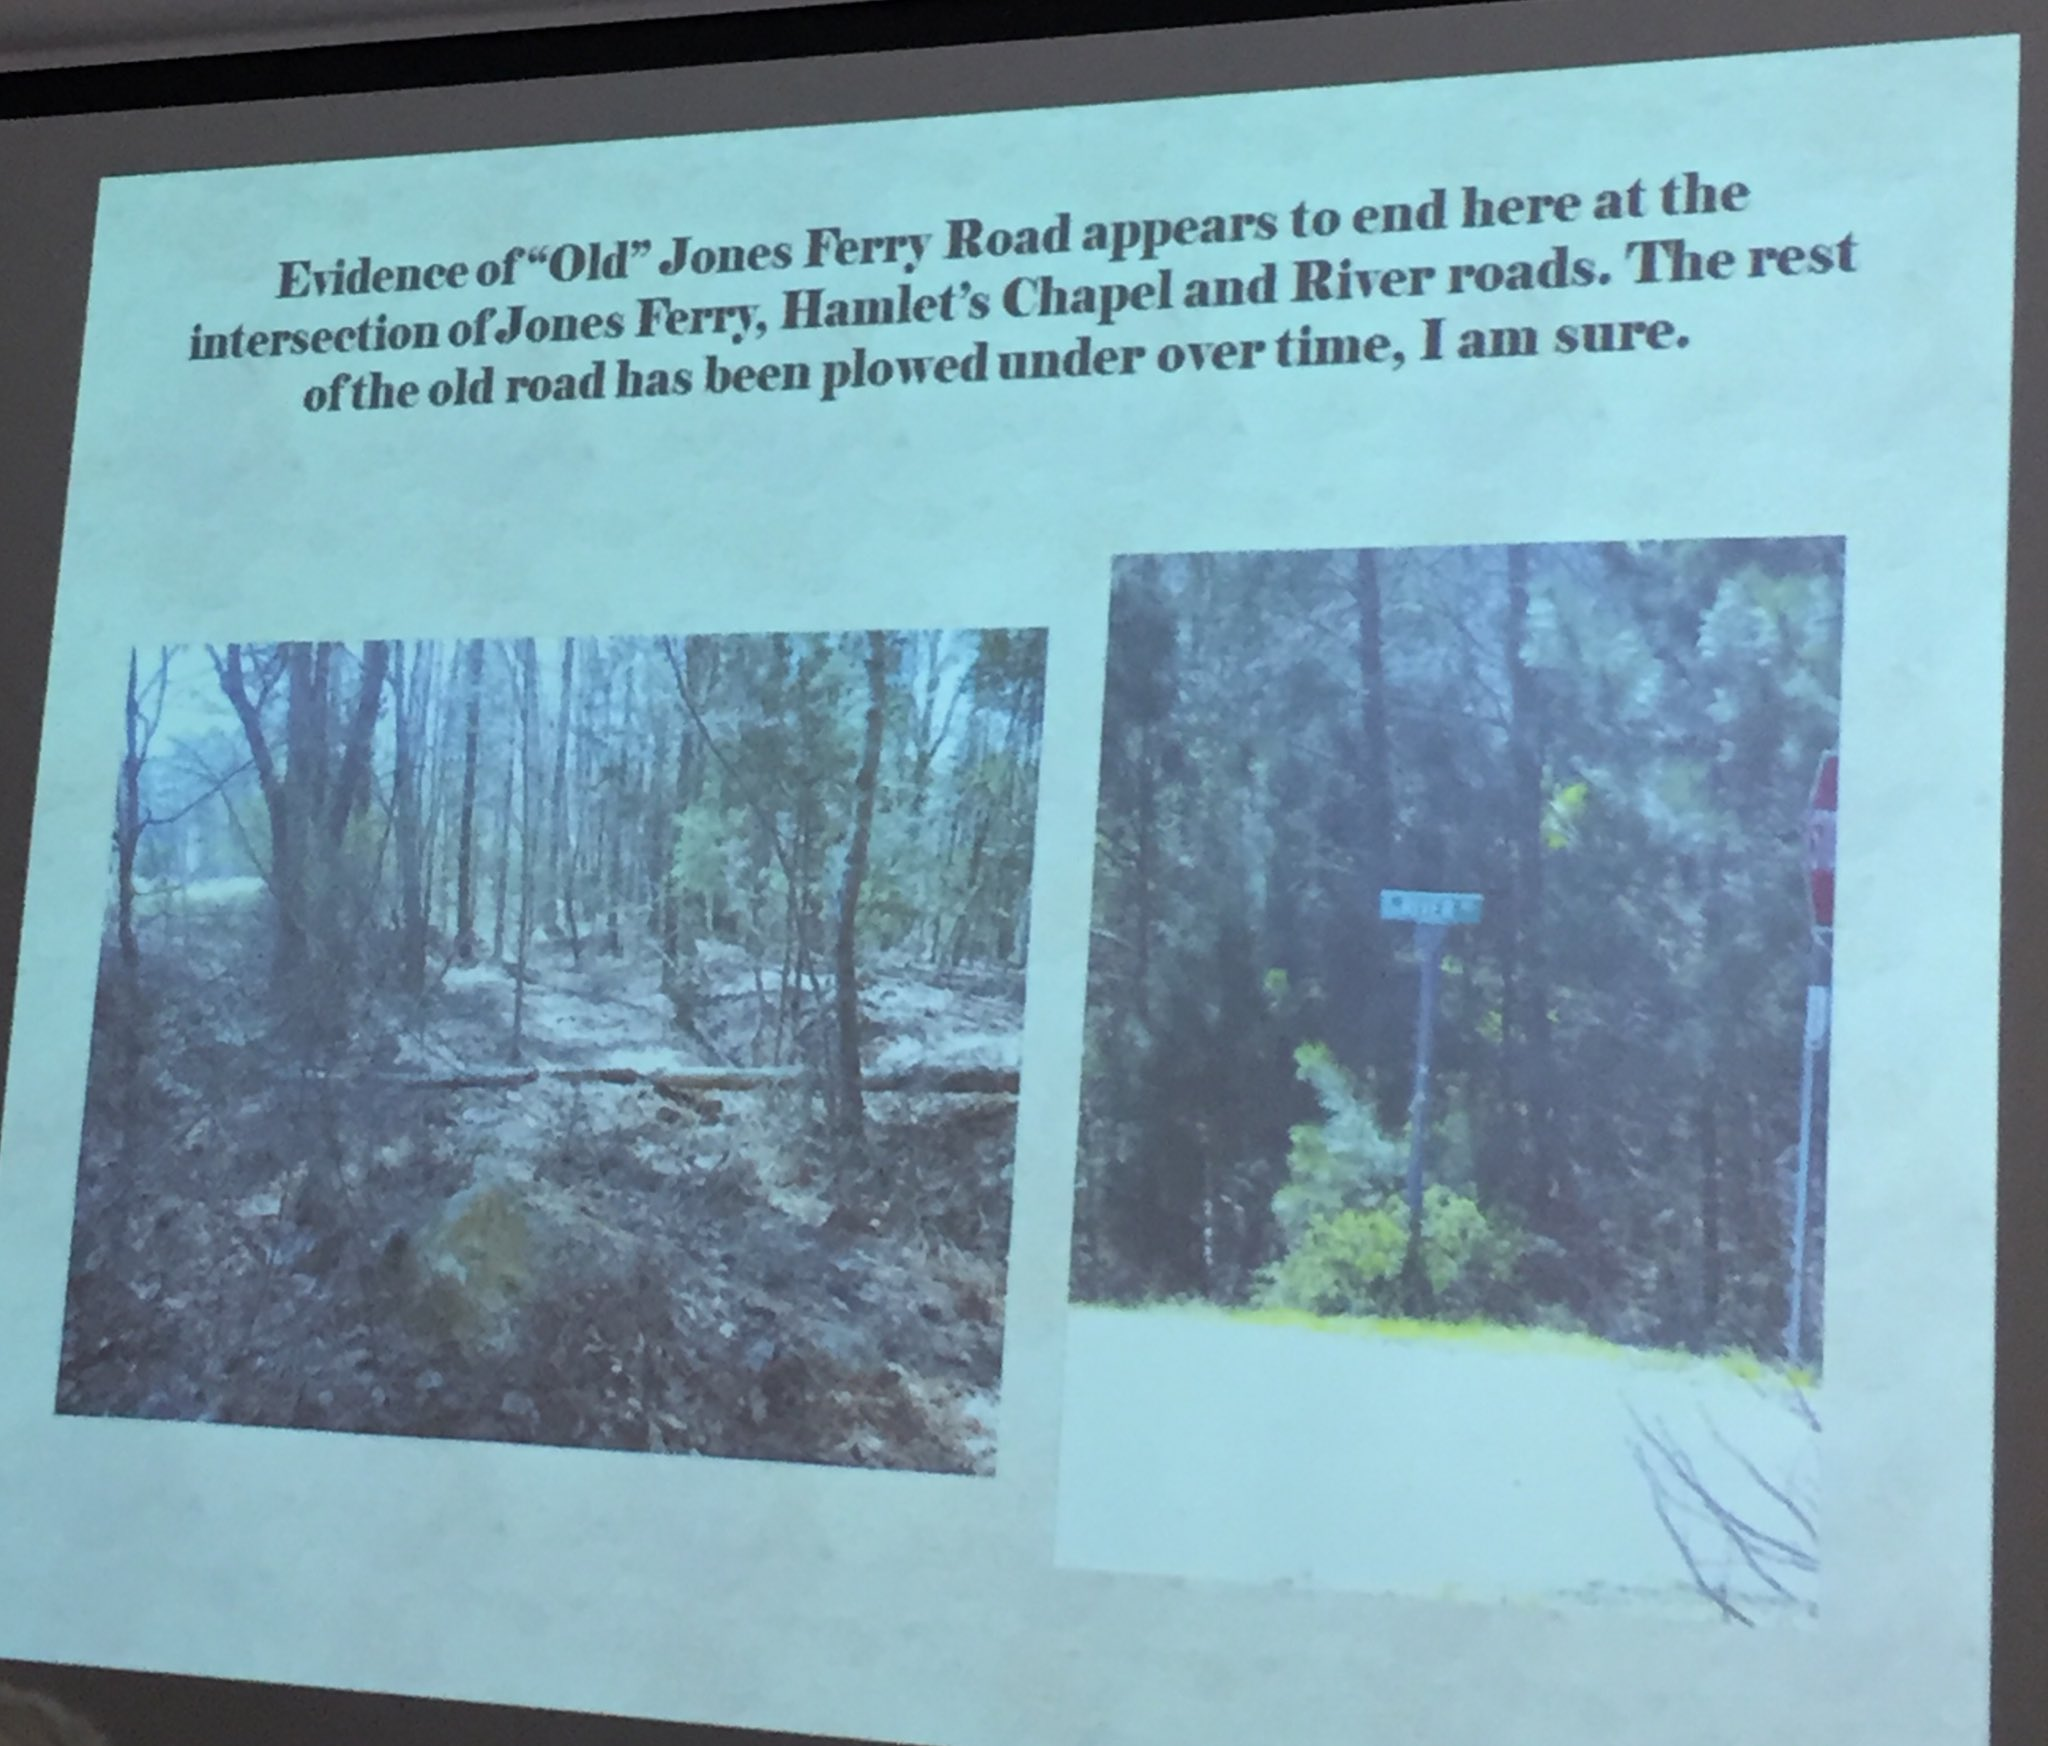 "@chpublib Photos of the end of evidence of ""old"" Jones Ferry Road, about 1/2 mile from Haw River #jonesferry https://t.co/5xljSnVyAT"